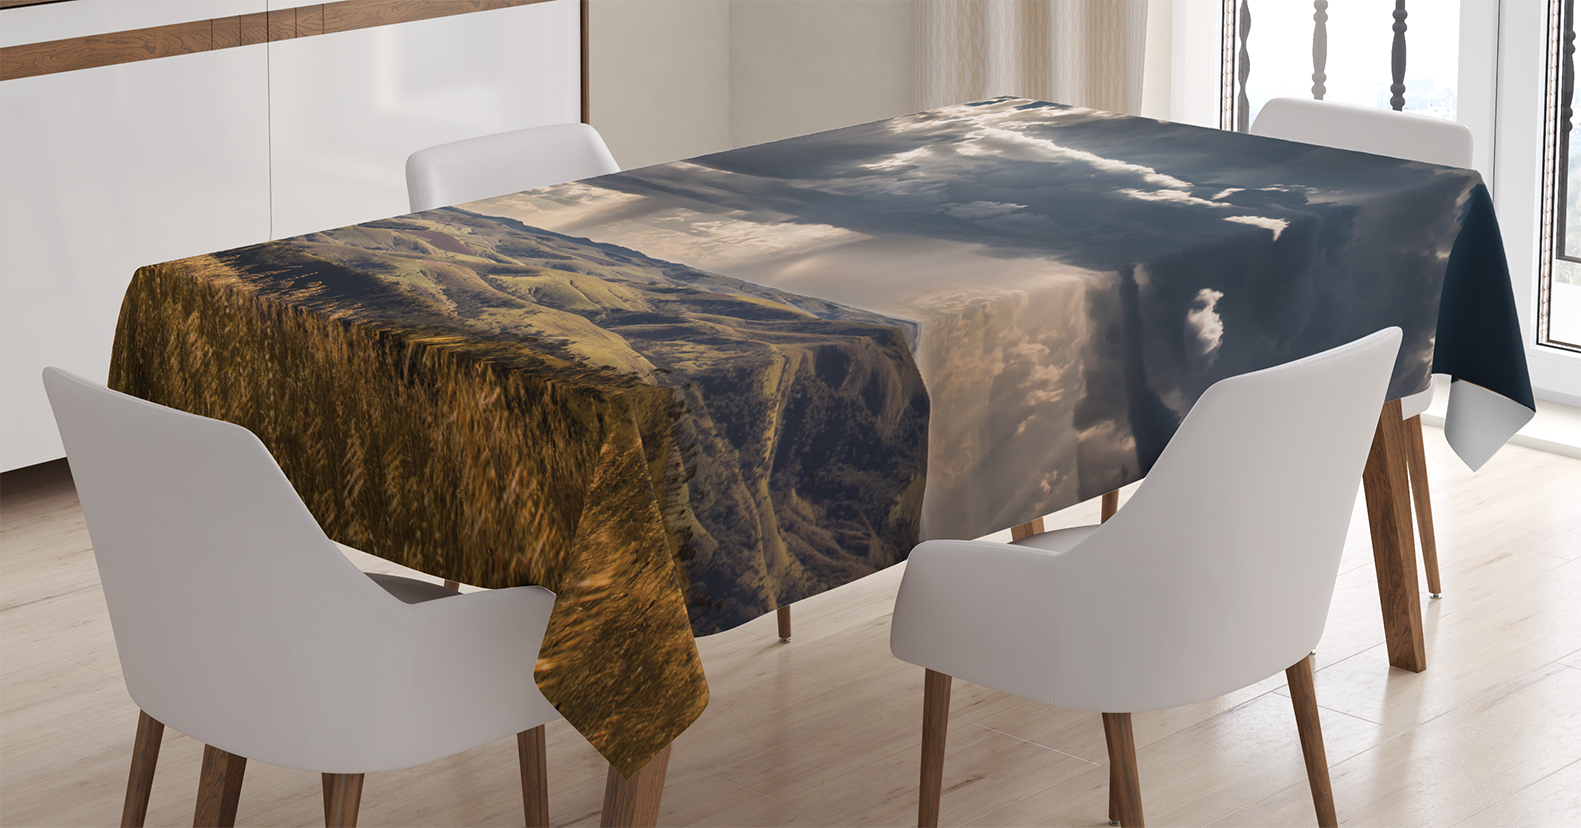 Farmhouse Decor Tablecloth, Puffy Clouds in Sky over Mountains Rough Valley Canyon Natural Wonders Concept, Rectangular Table Cover for... by Kozmos